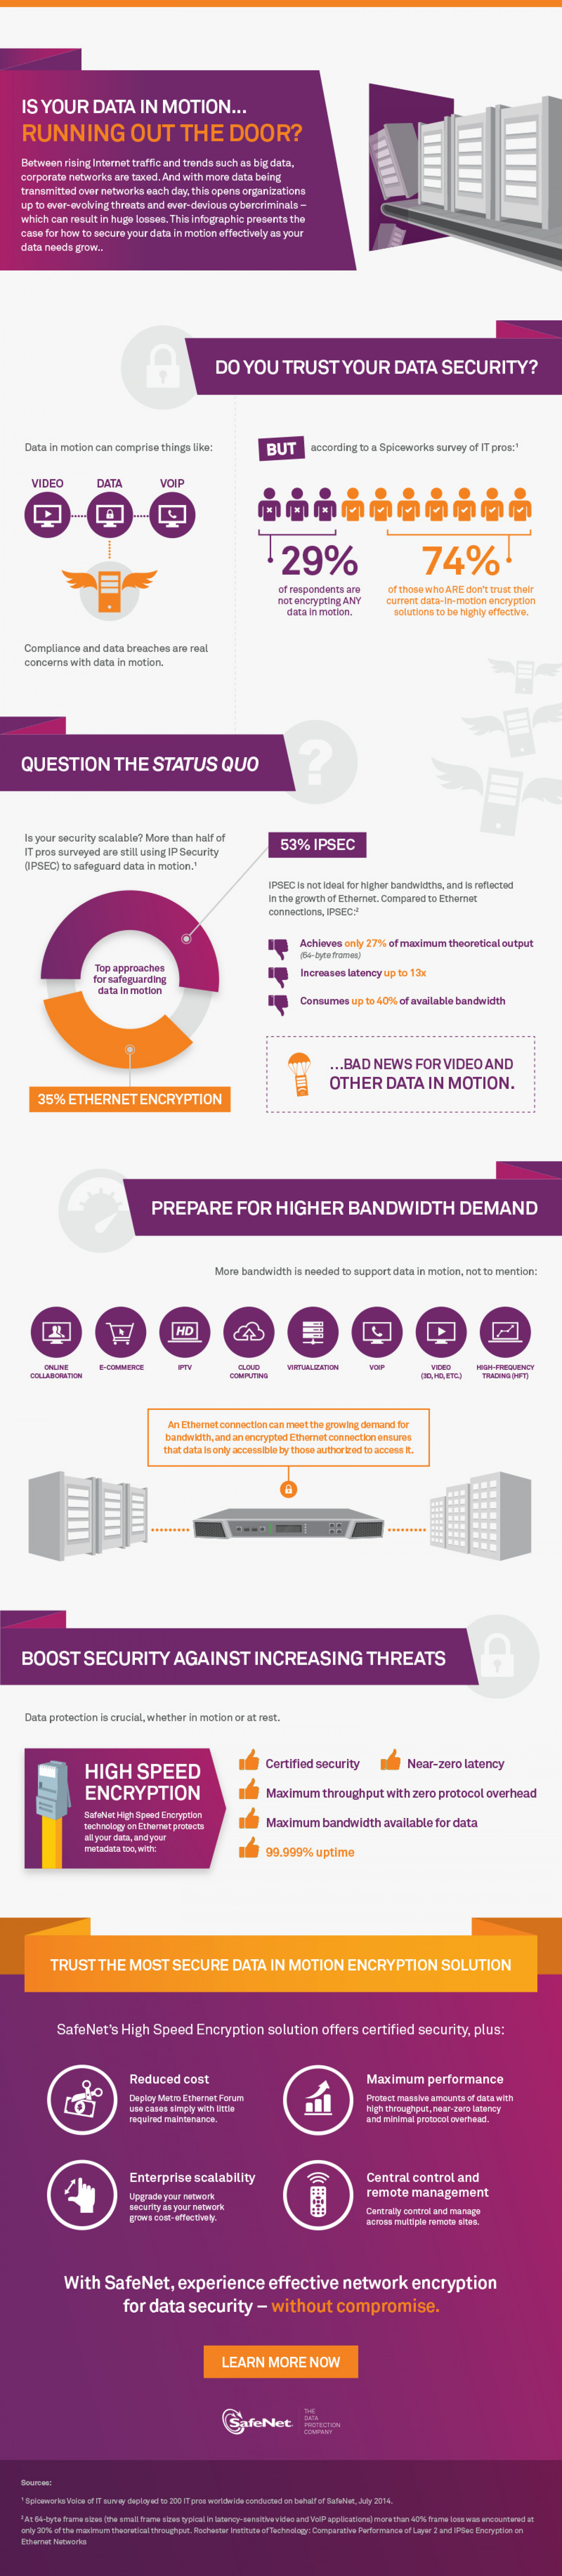 Is Your Data in Motion...Running Out the Door? Infographic